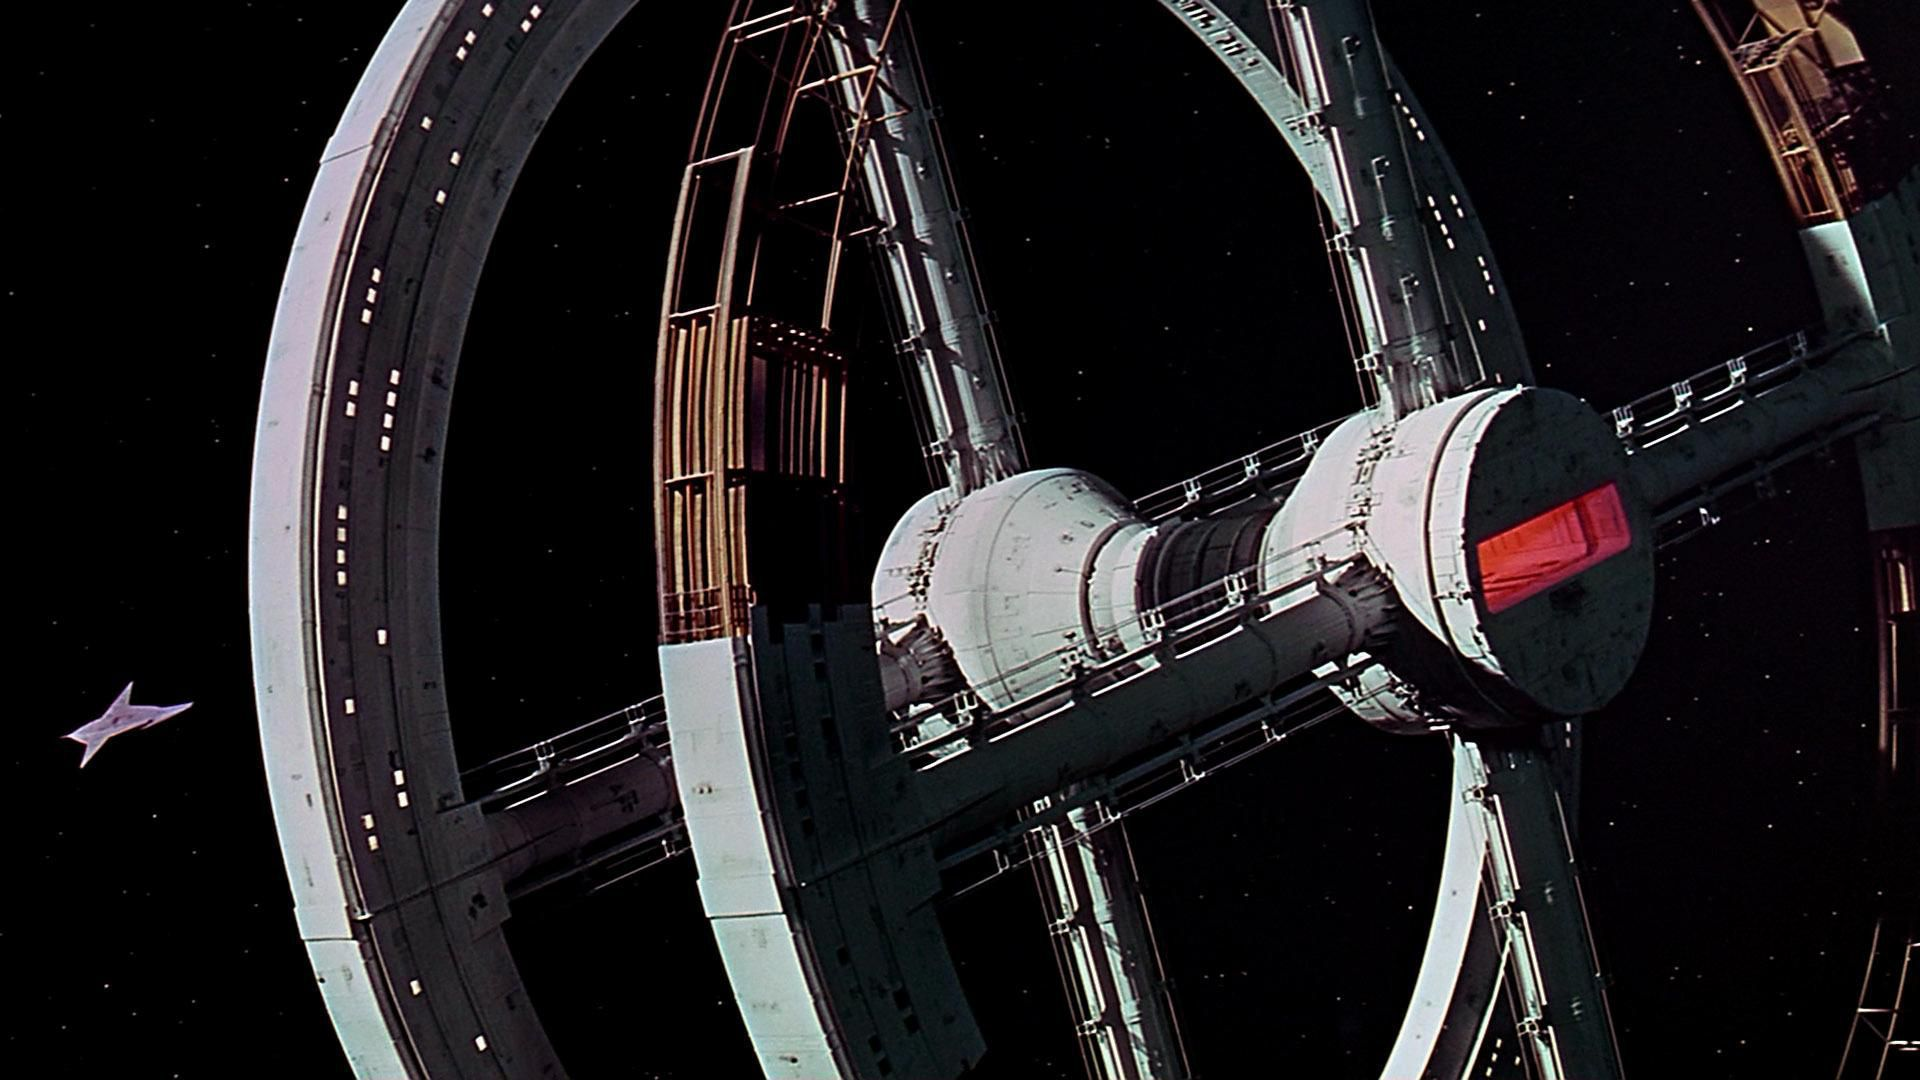 2001 a space odyssey wallpapers hd - Space odyssey wallpaper ...